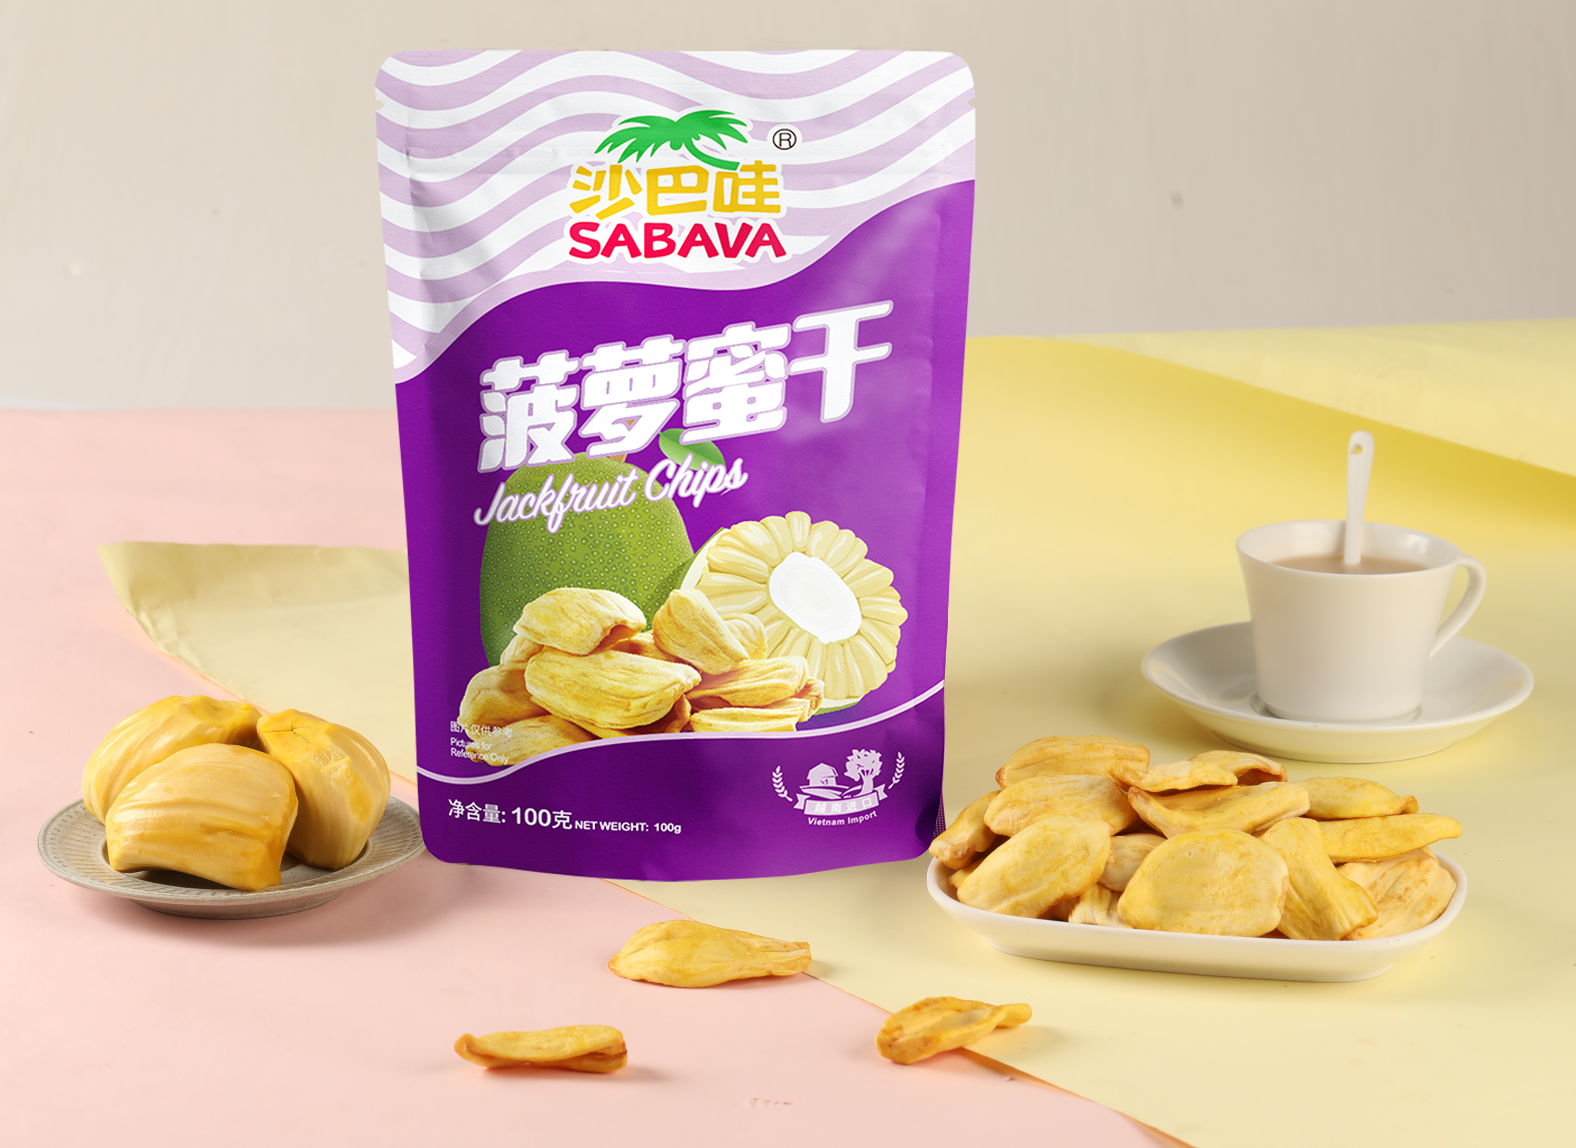 What did jackfruit do to become the top stream of the wow delicious family in Sabava?